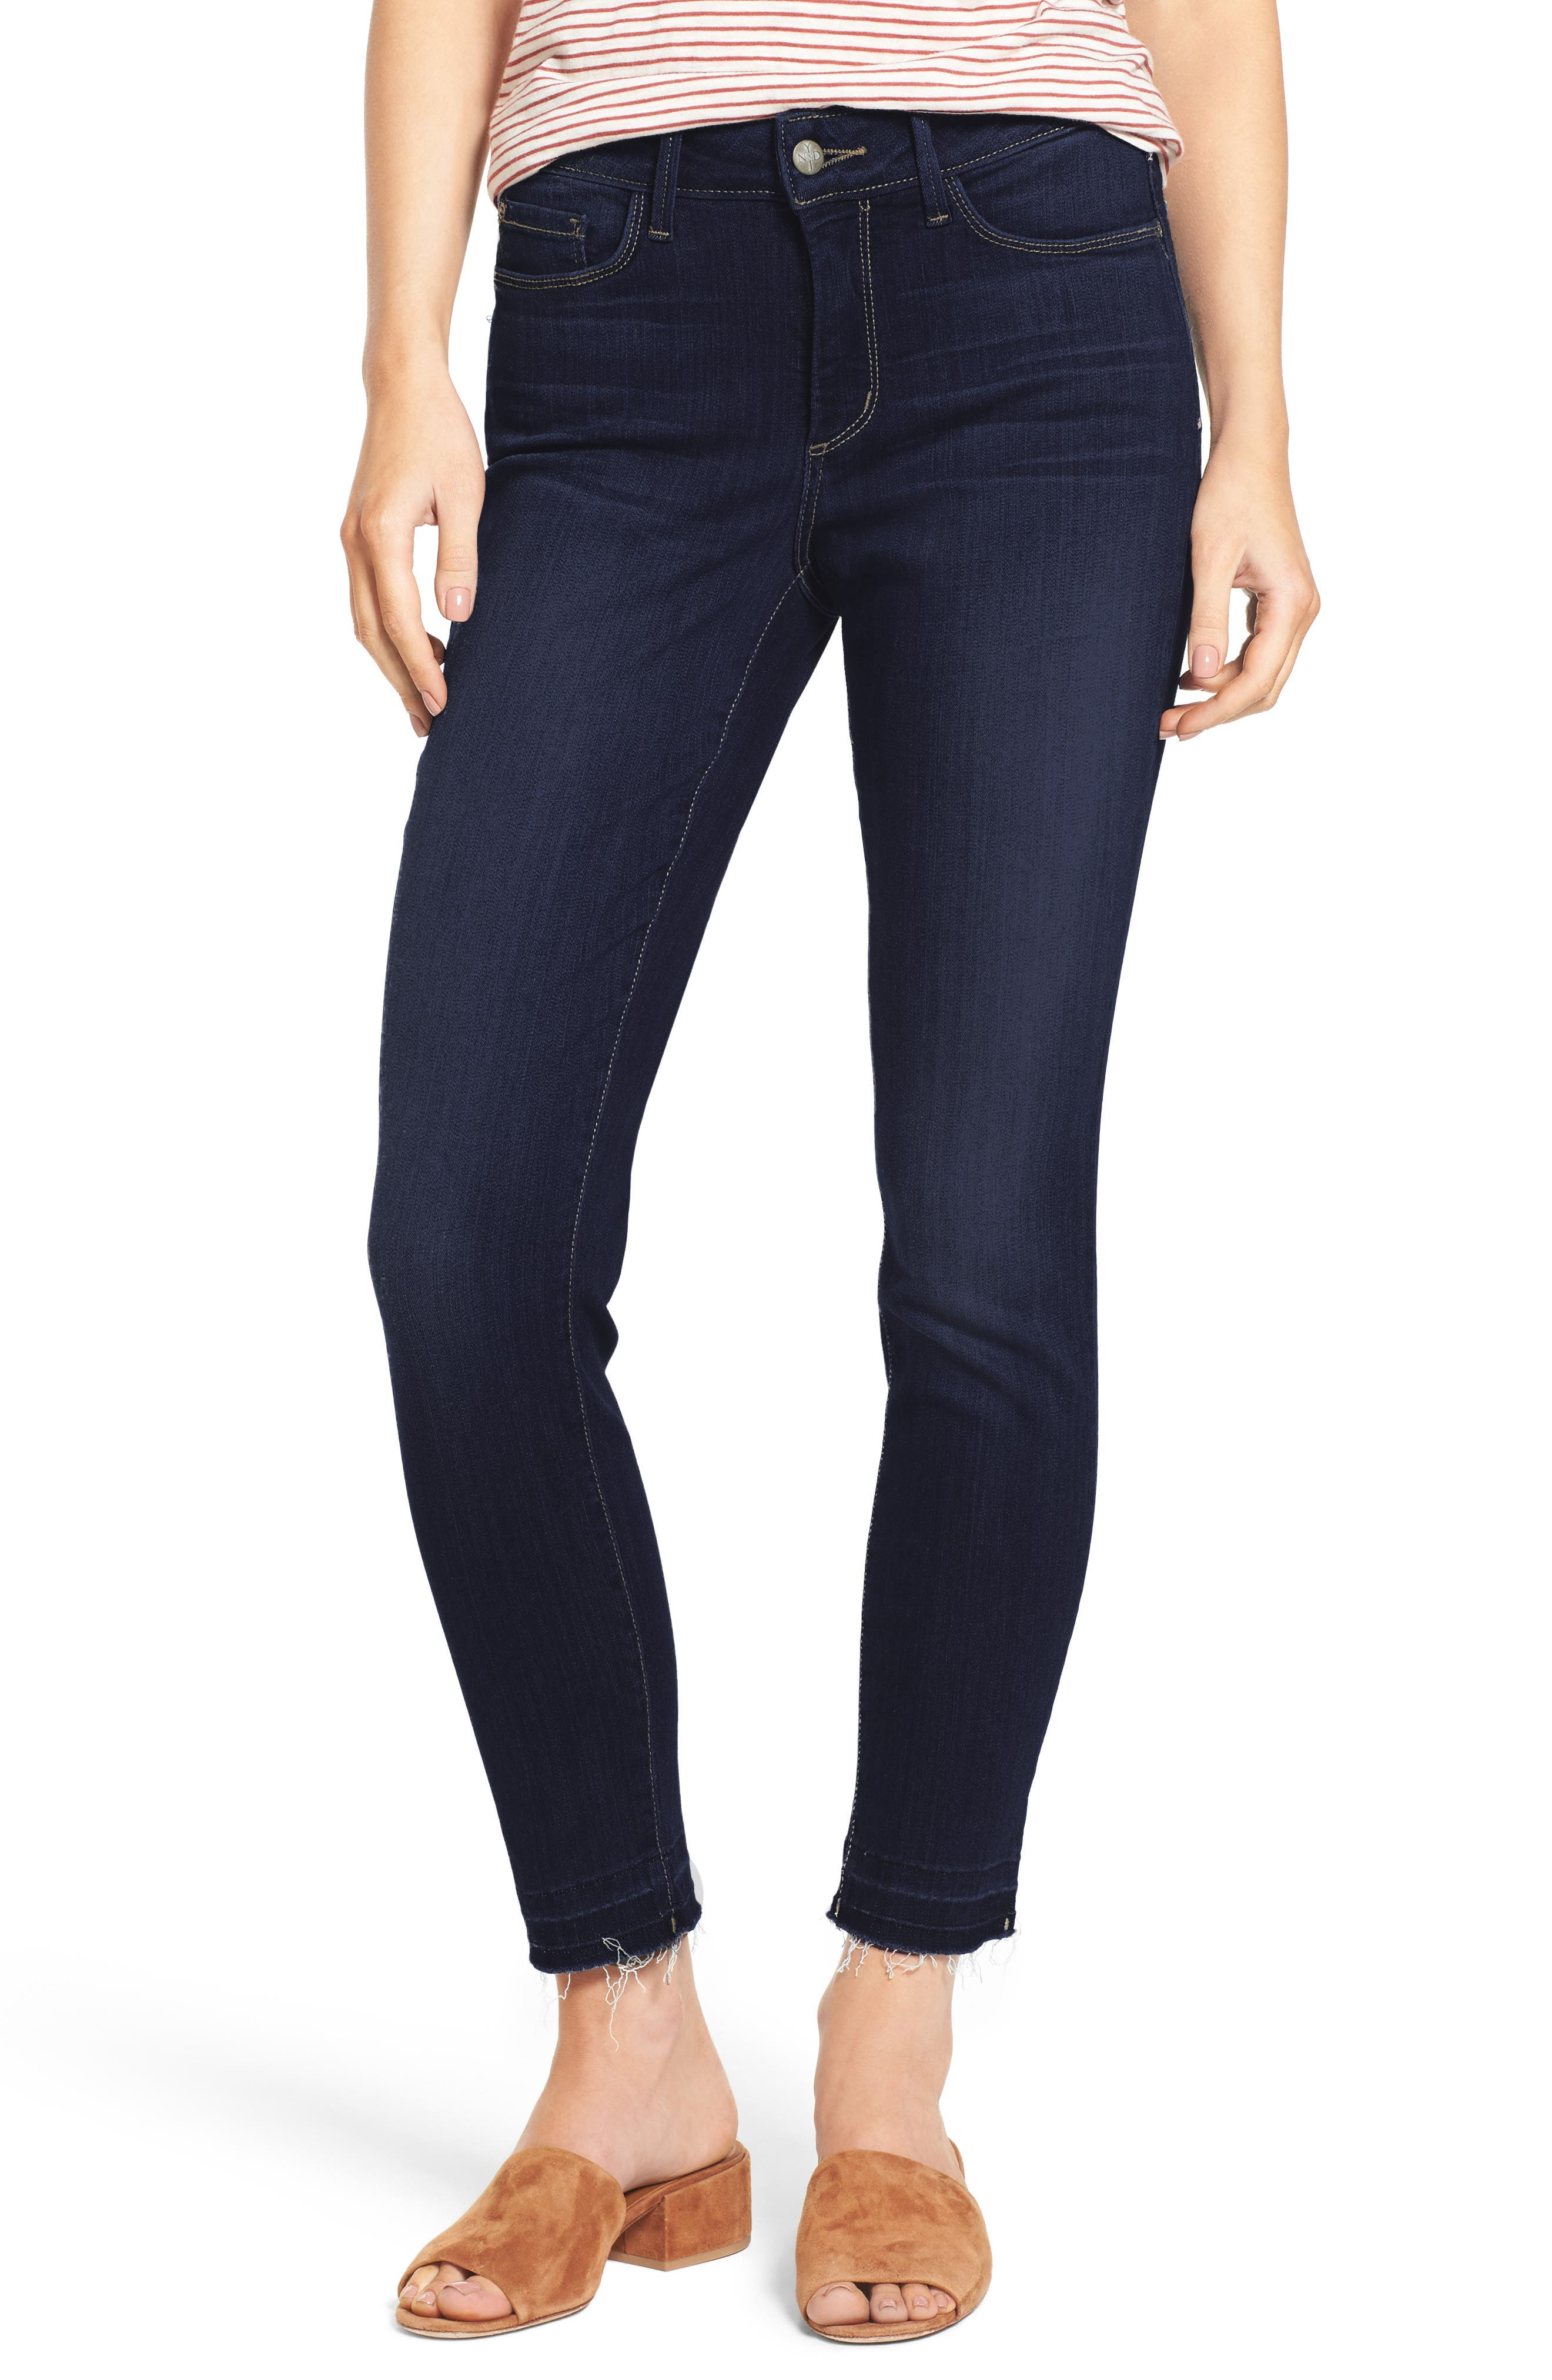 Ami Release Hem Stretch Skinny Jeans,                             Main thumbnail 1, color,                             464